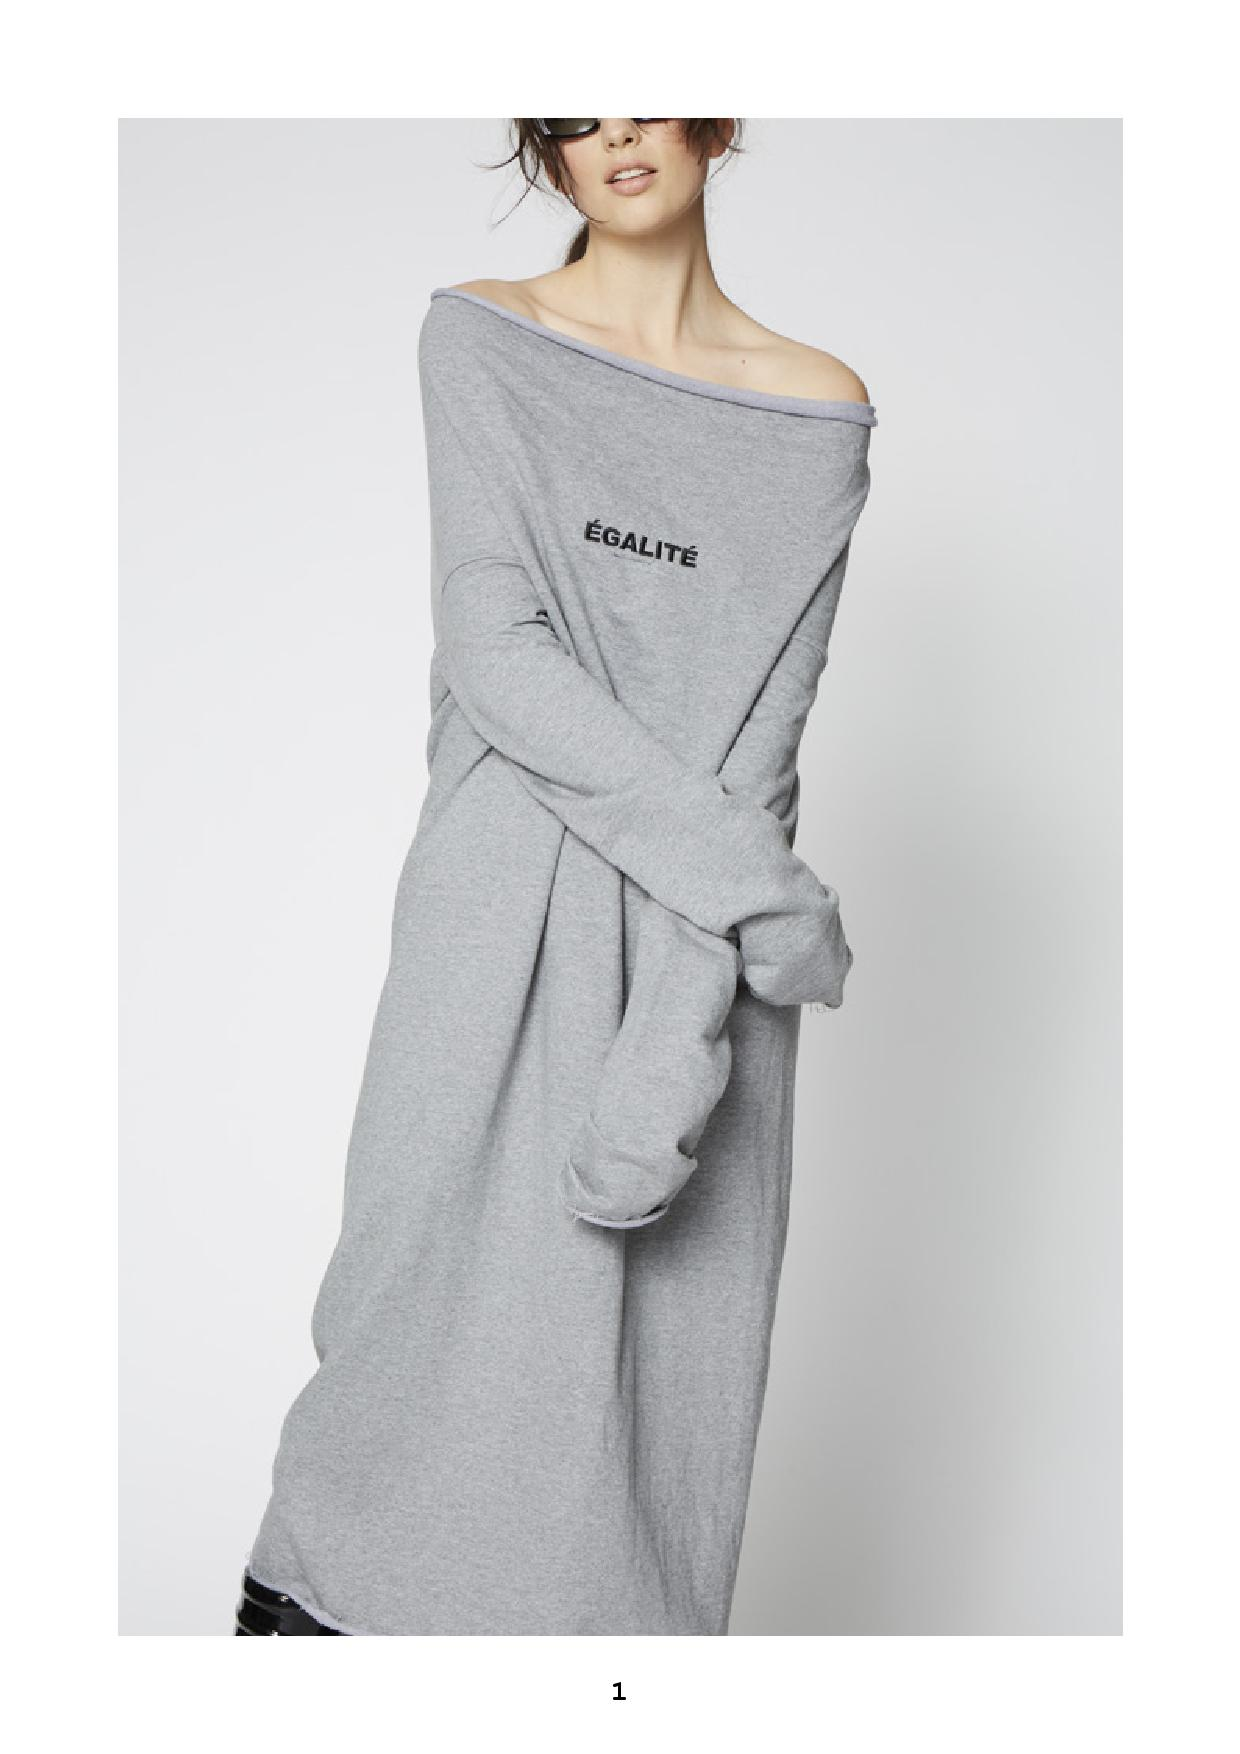 aw17 women s keypieces-page-002